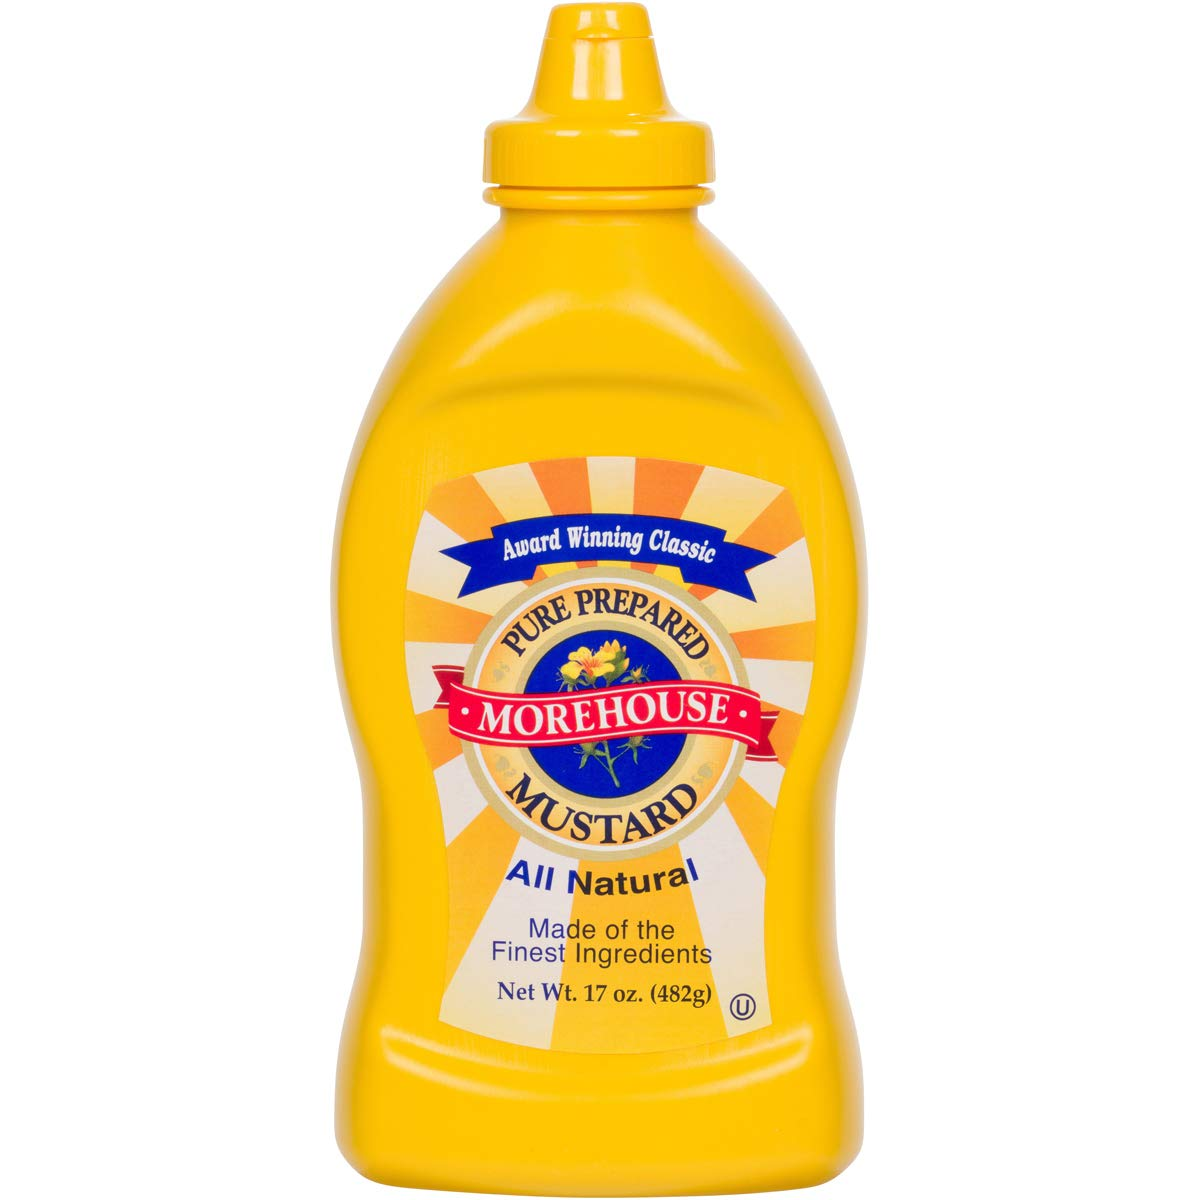 Morehouse Pure Prepared Mustard